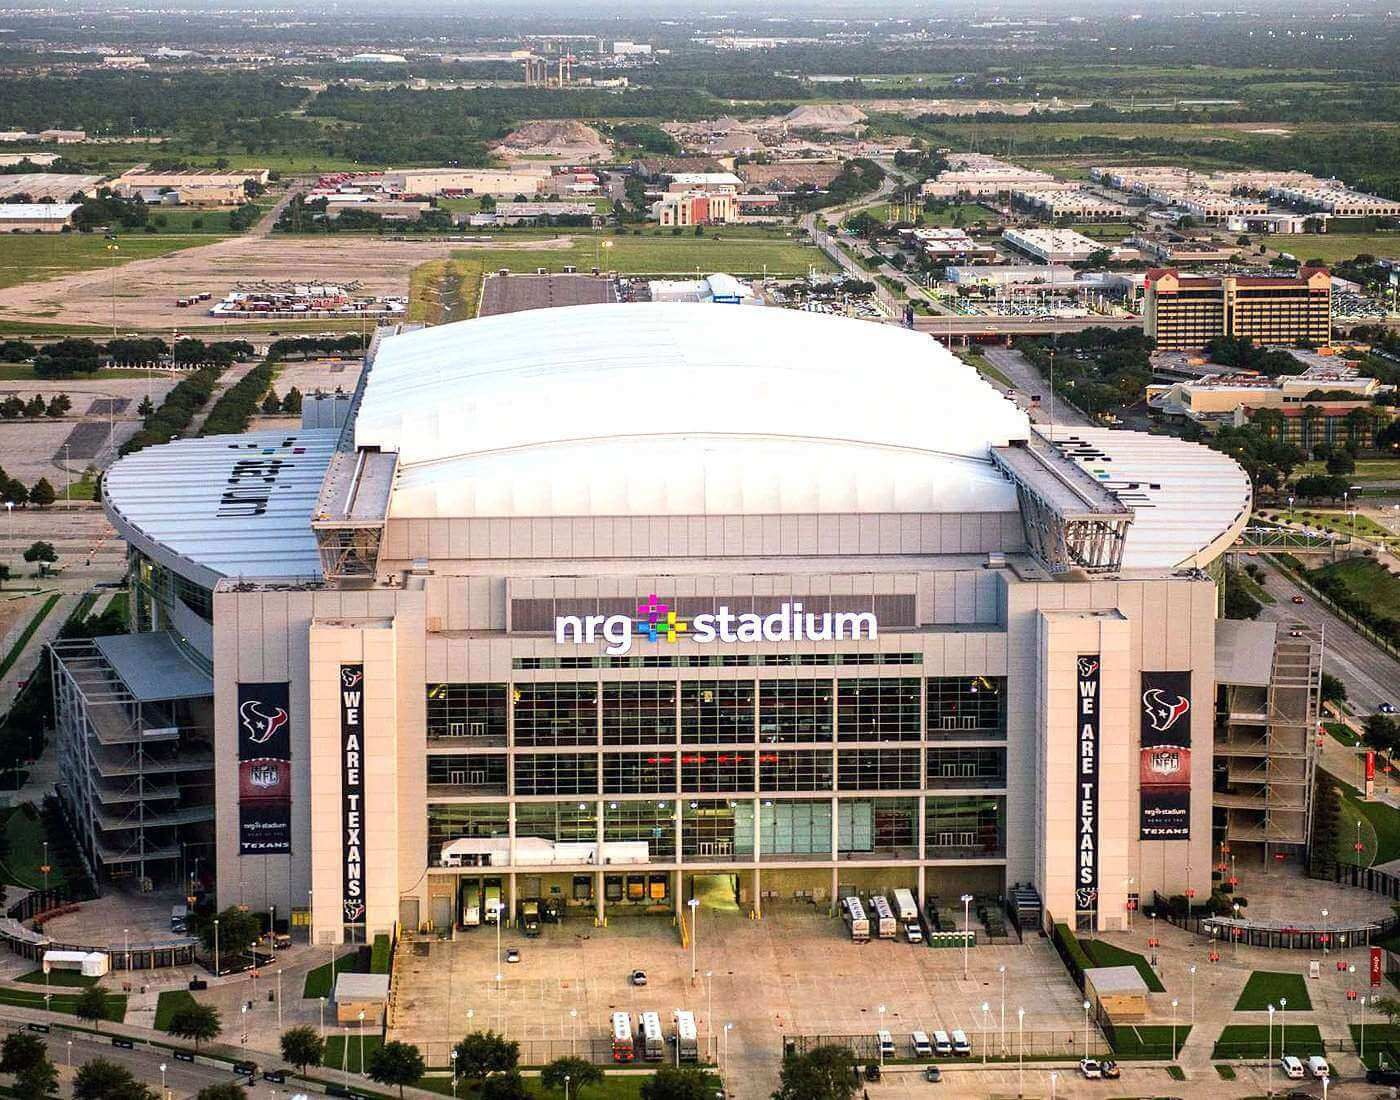 Nrg Stadium In 2020 Nrg Stadium Stadium Nrg Stadium Houston